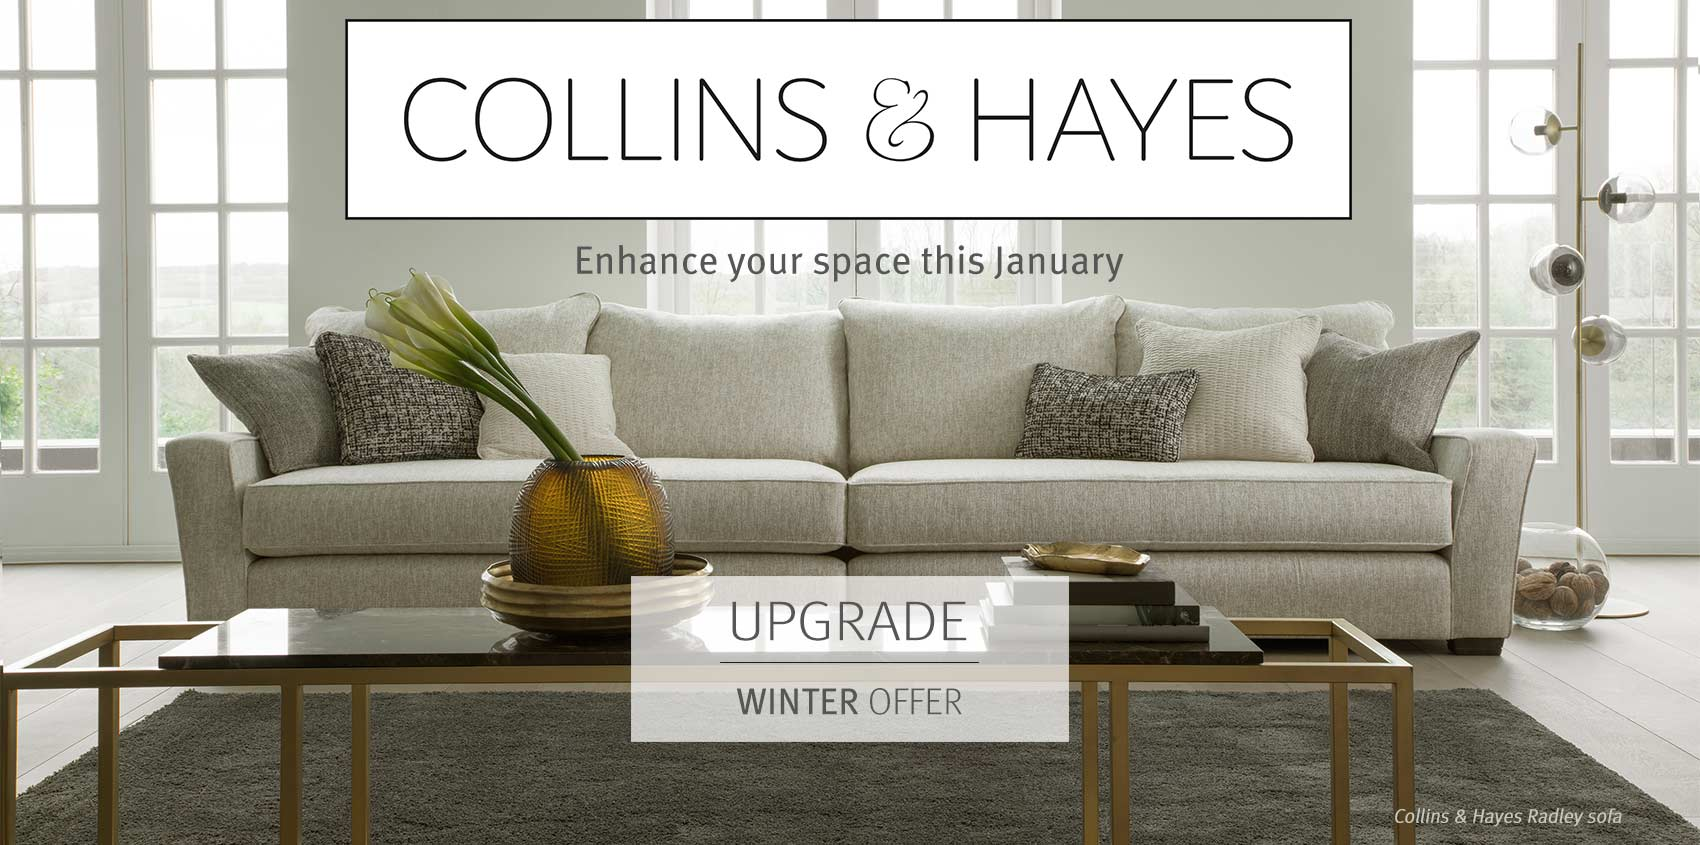 Collins & Hayes December offers